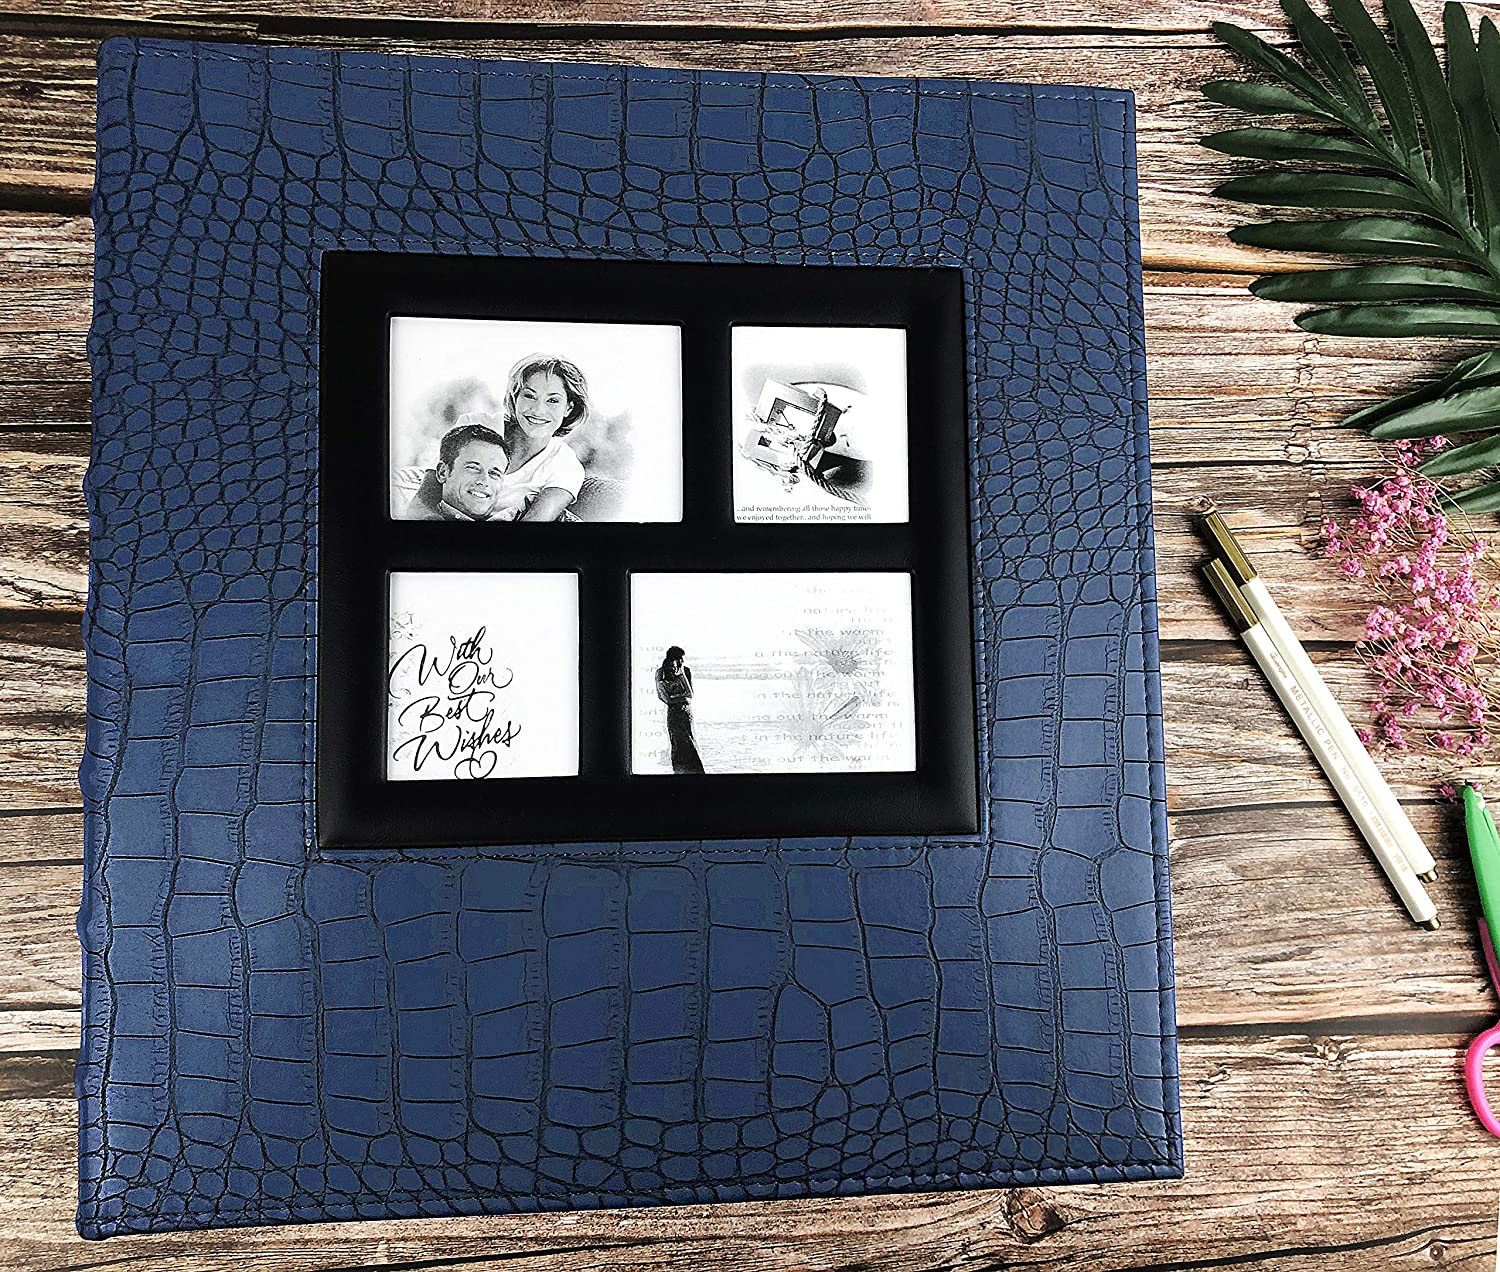 Blue, 600 Pocket RECUTMS Photo Album 4x6 600 Pockets Black Pages Large Capacity Leather Cover Wedding Family Anniversary Photo Albums